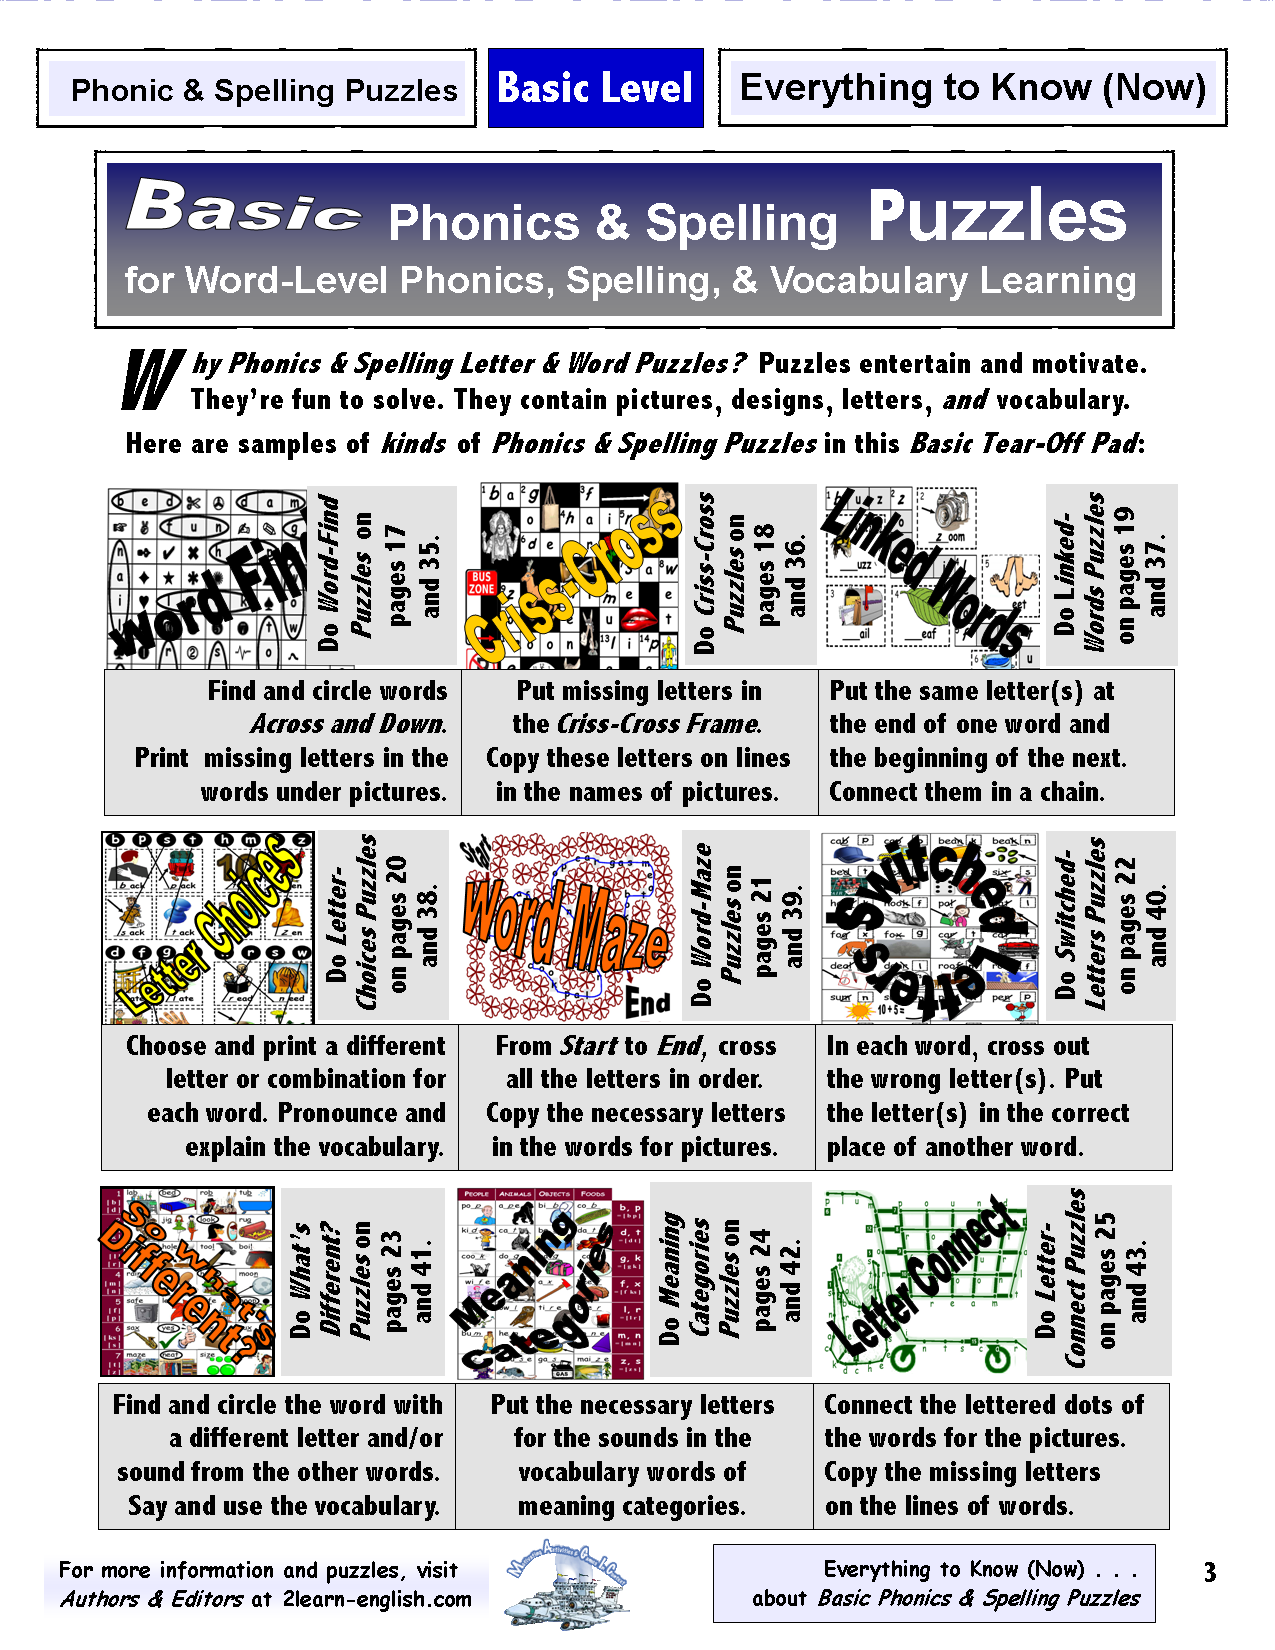 Spelling & Phonics Puzzles Level 1 = Basic Literacy &amp